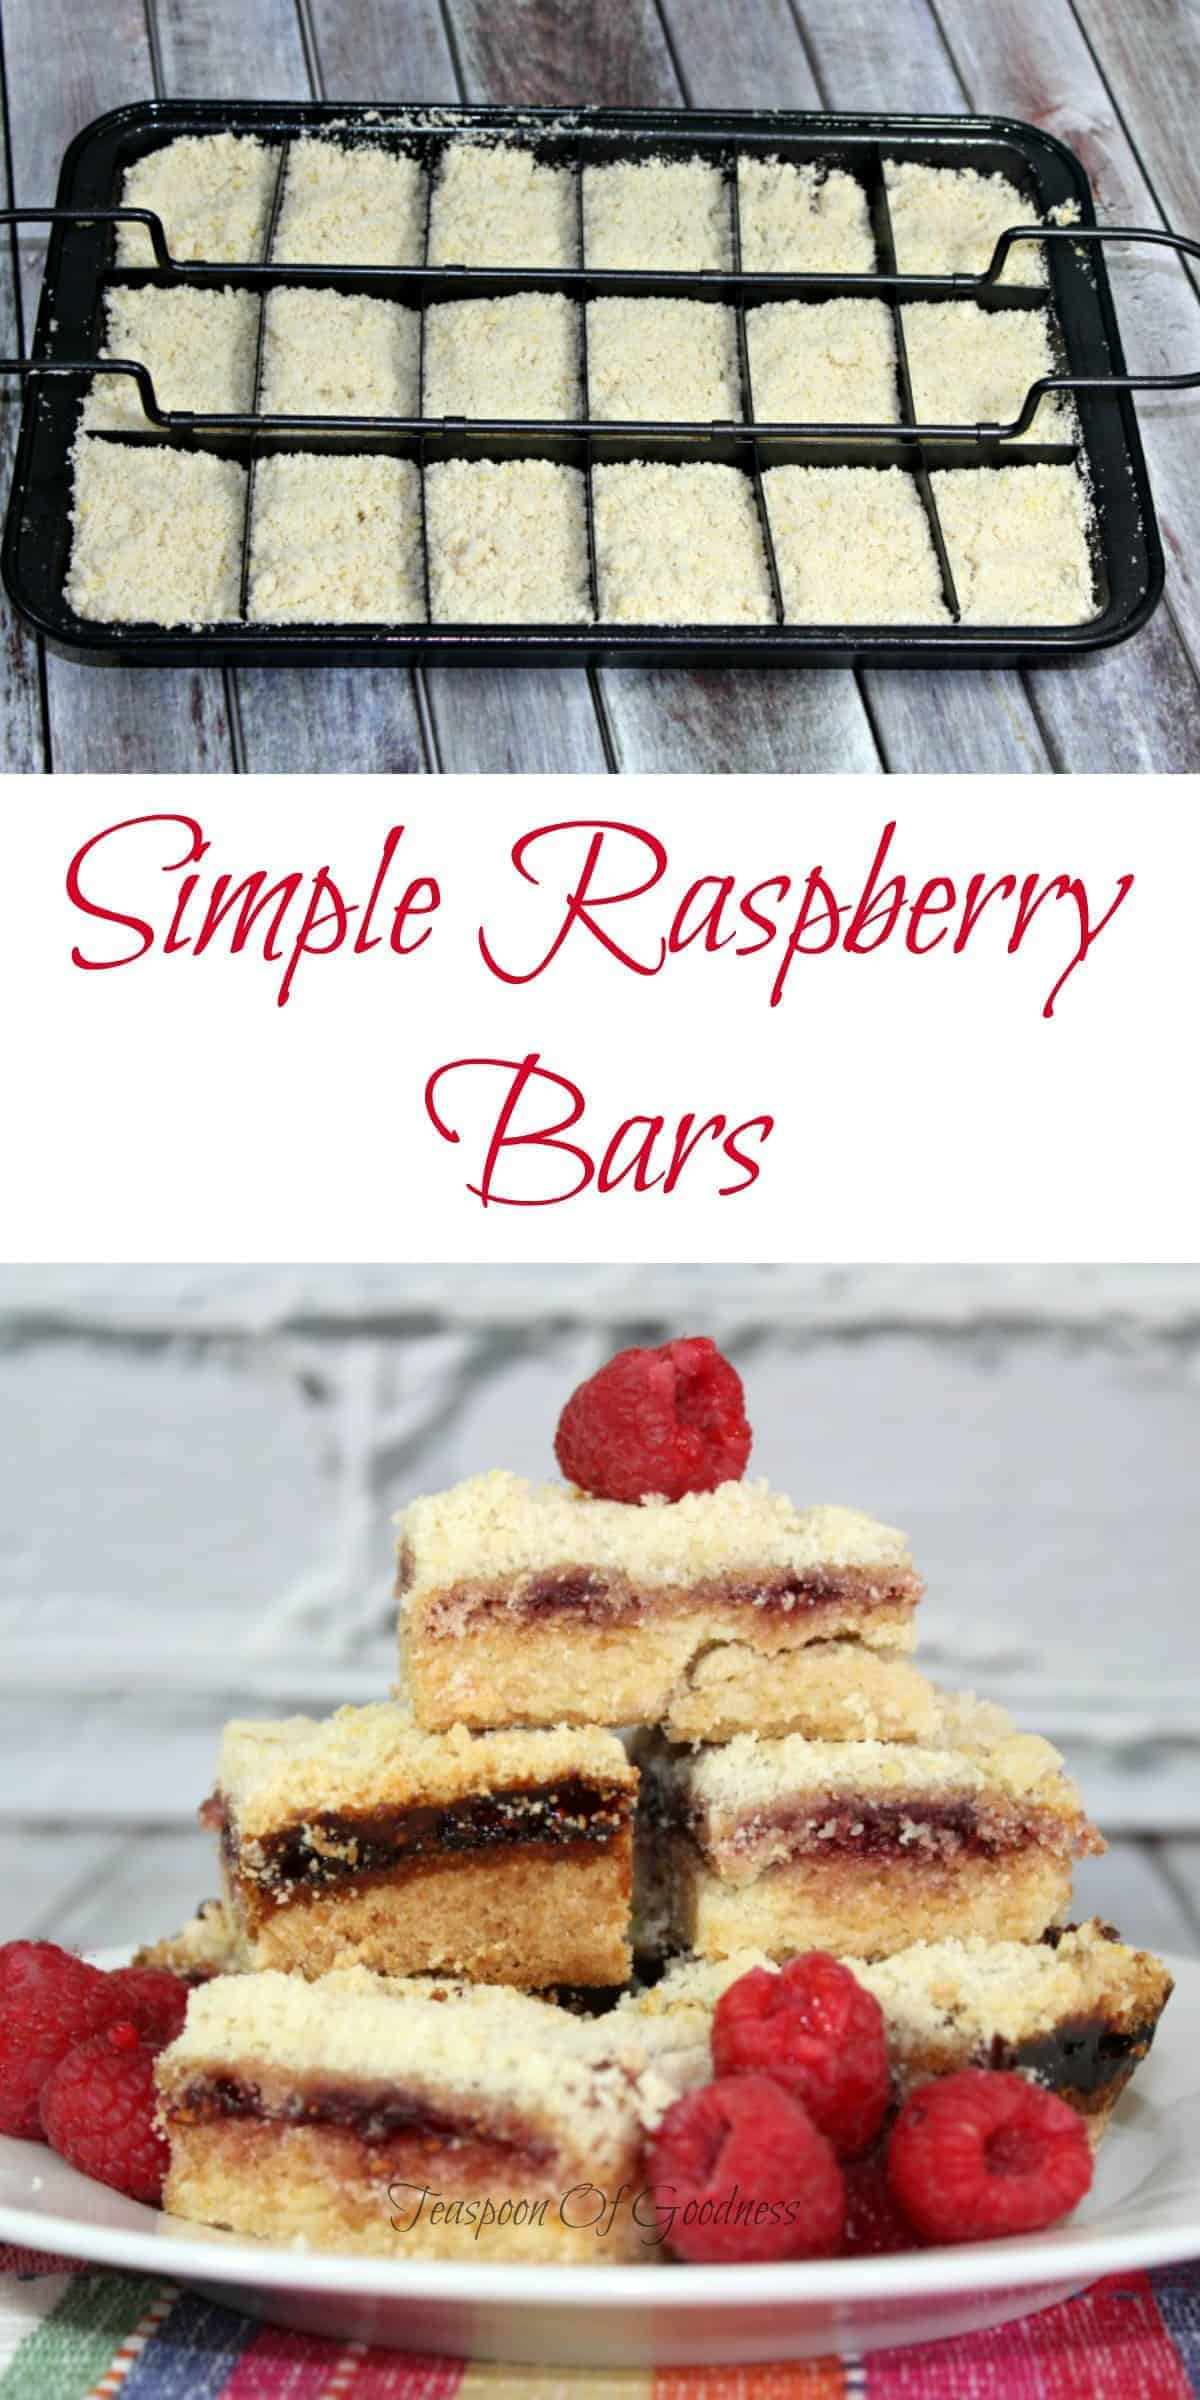 Simple Raspberry Bars Recipe